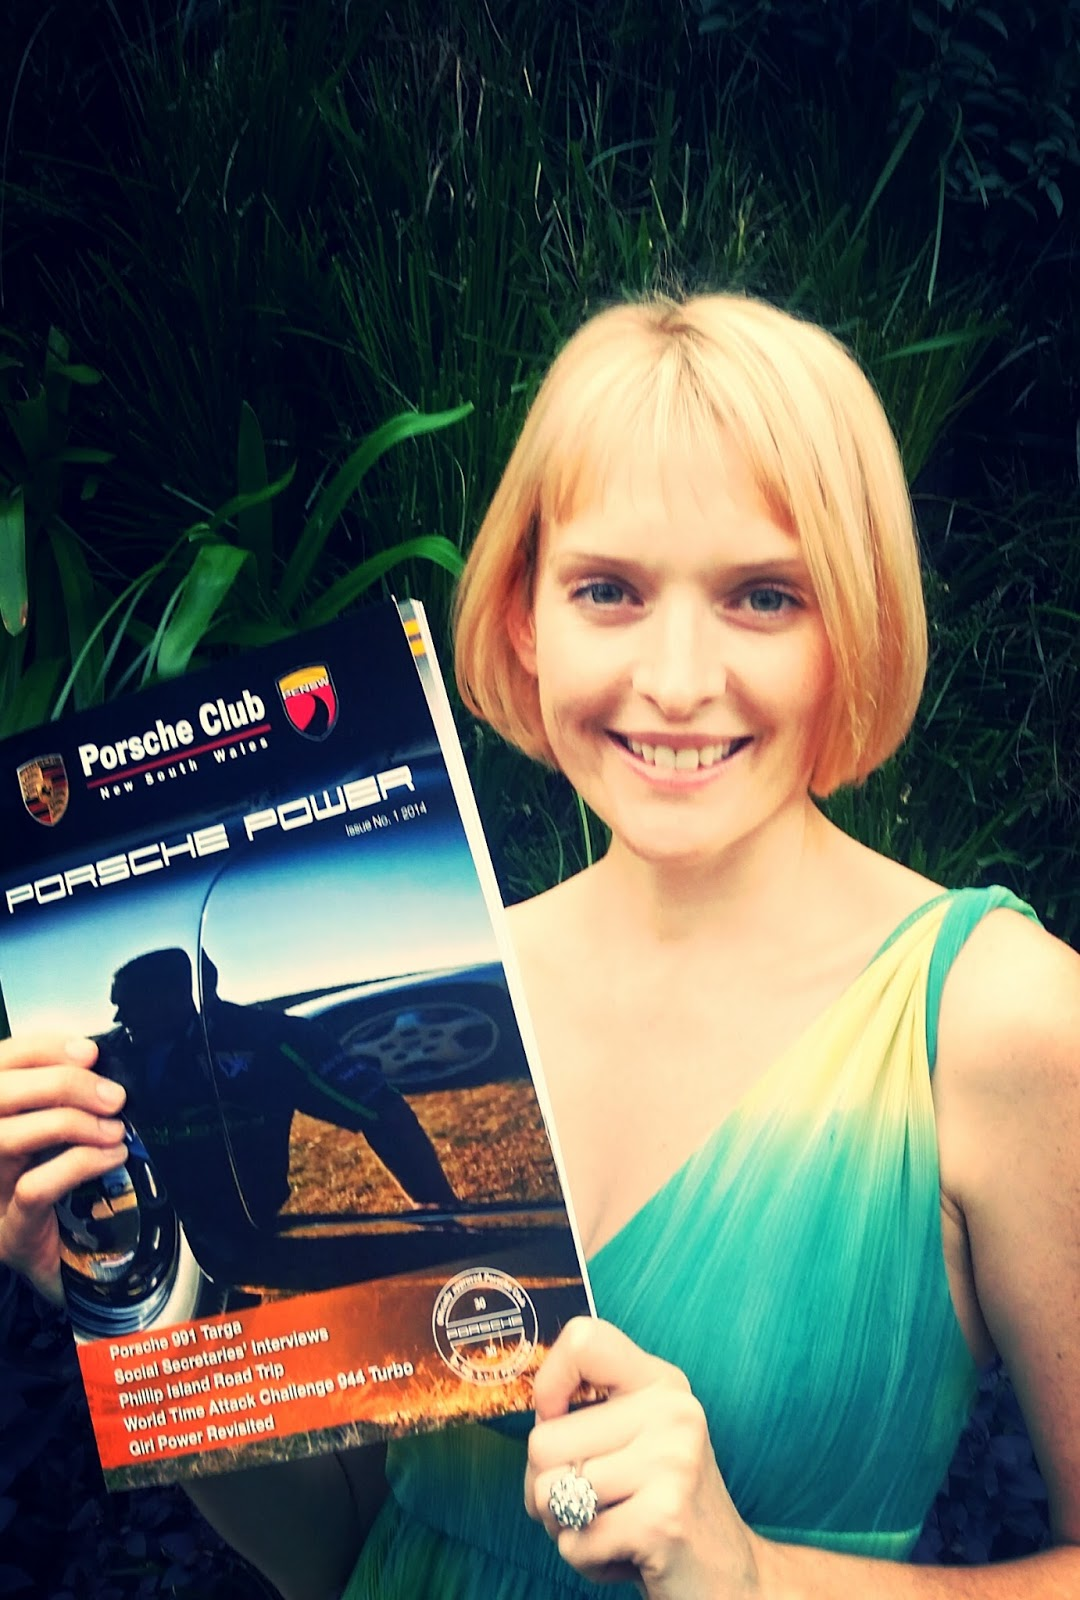 Photographer Kate Branch published in Porsche power